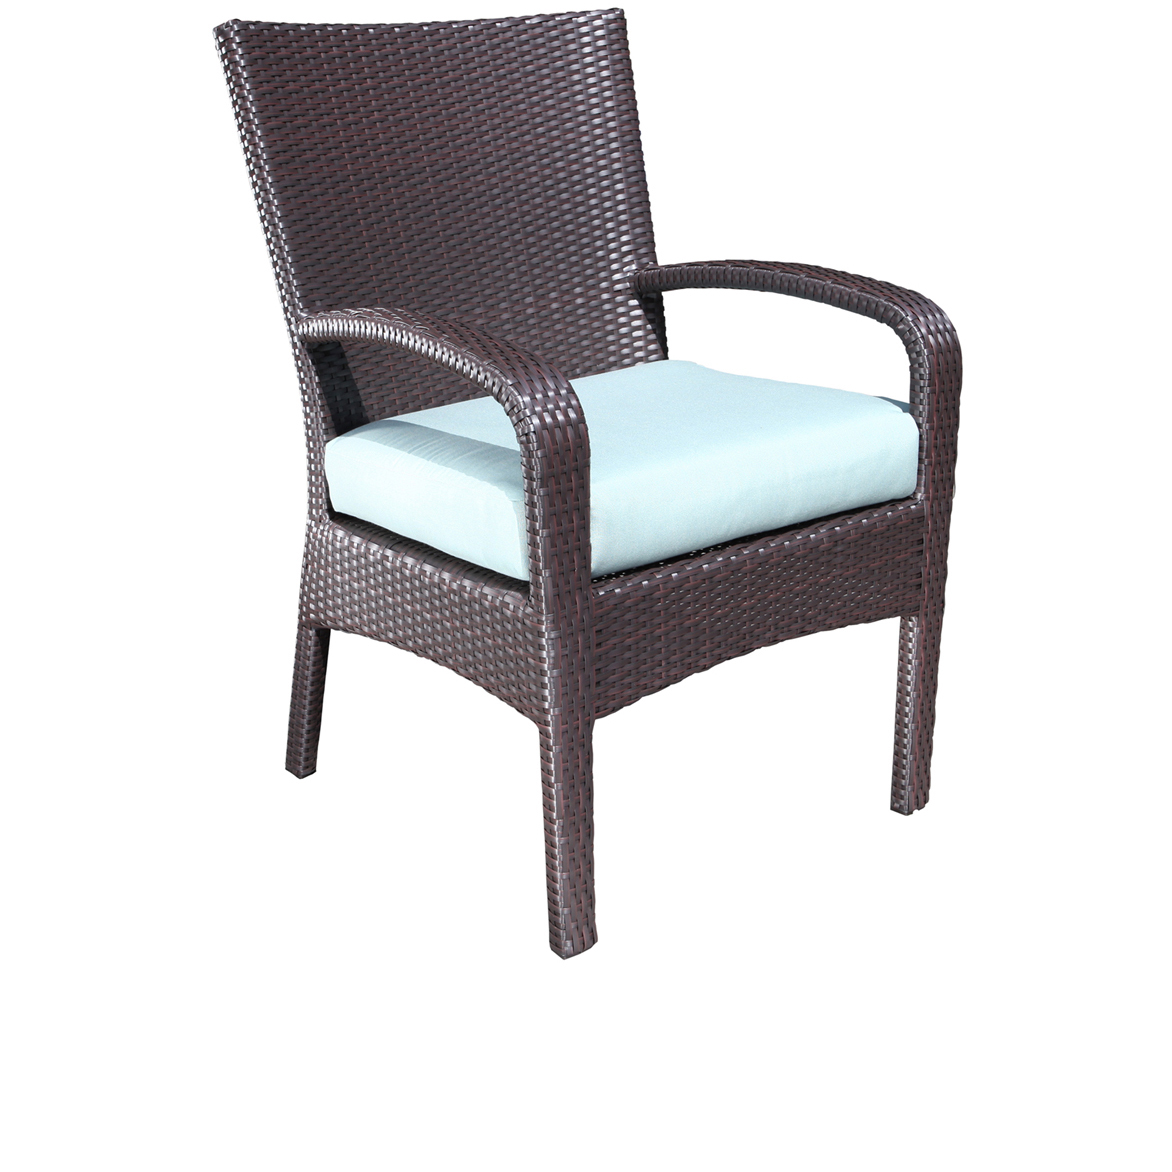 Image of: Simple Wicker Patio Chair